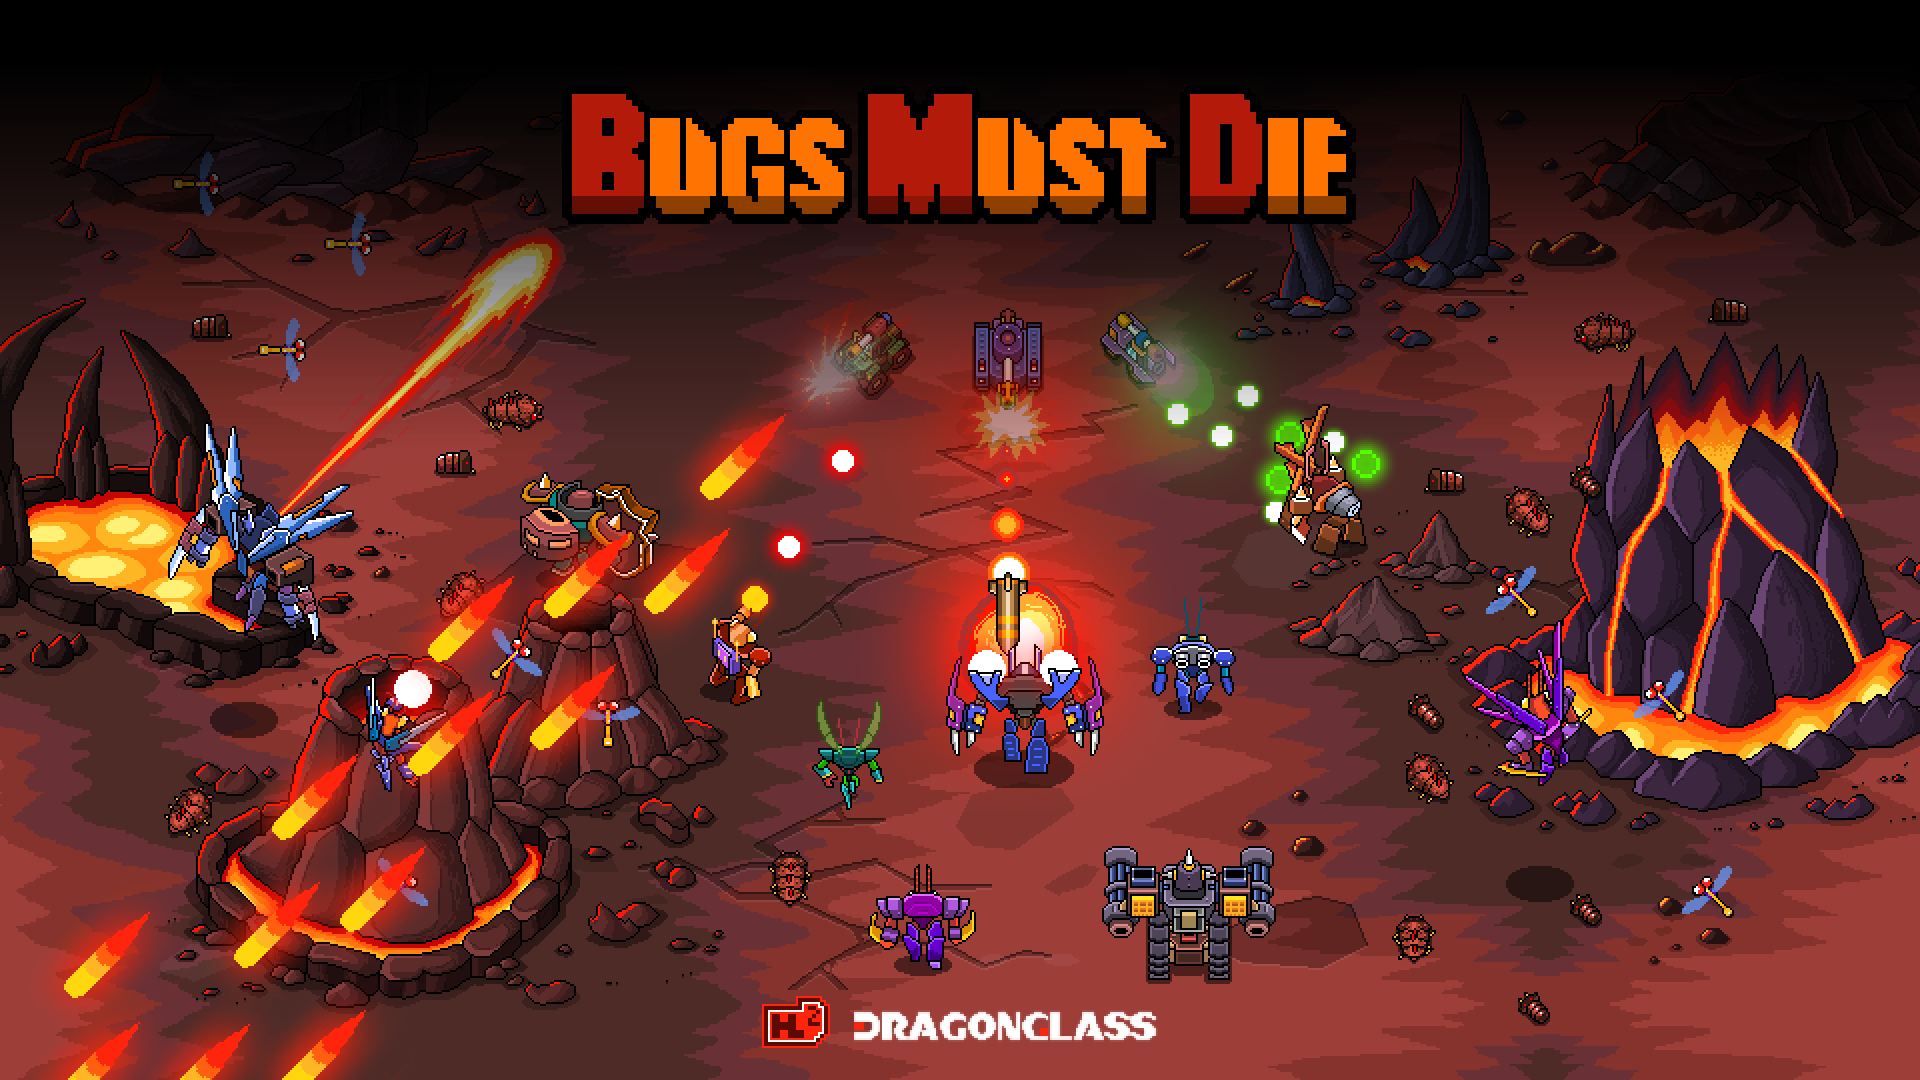 Bugs Must Die Launch Poster